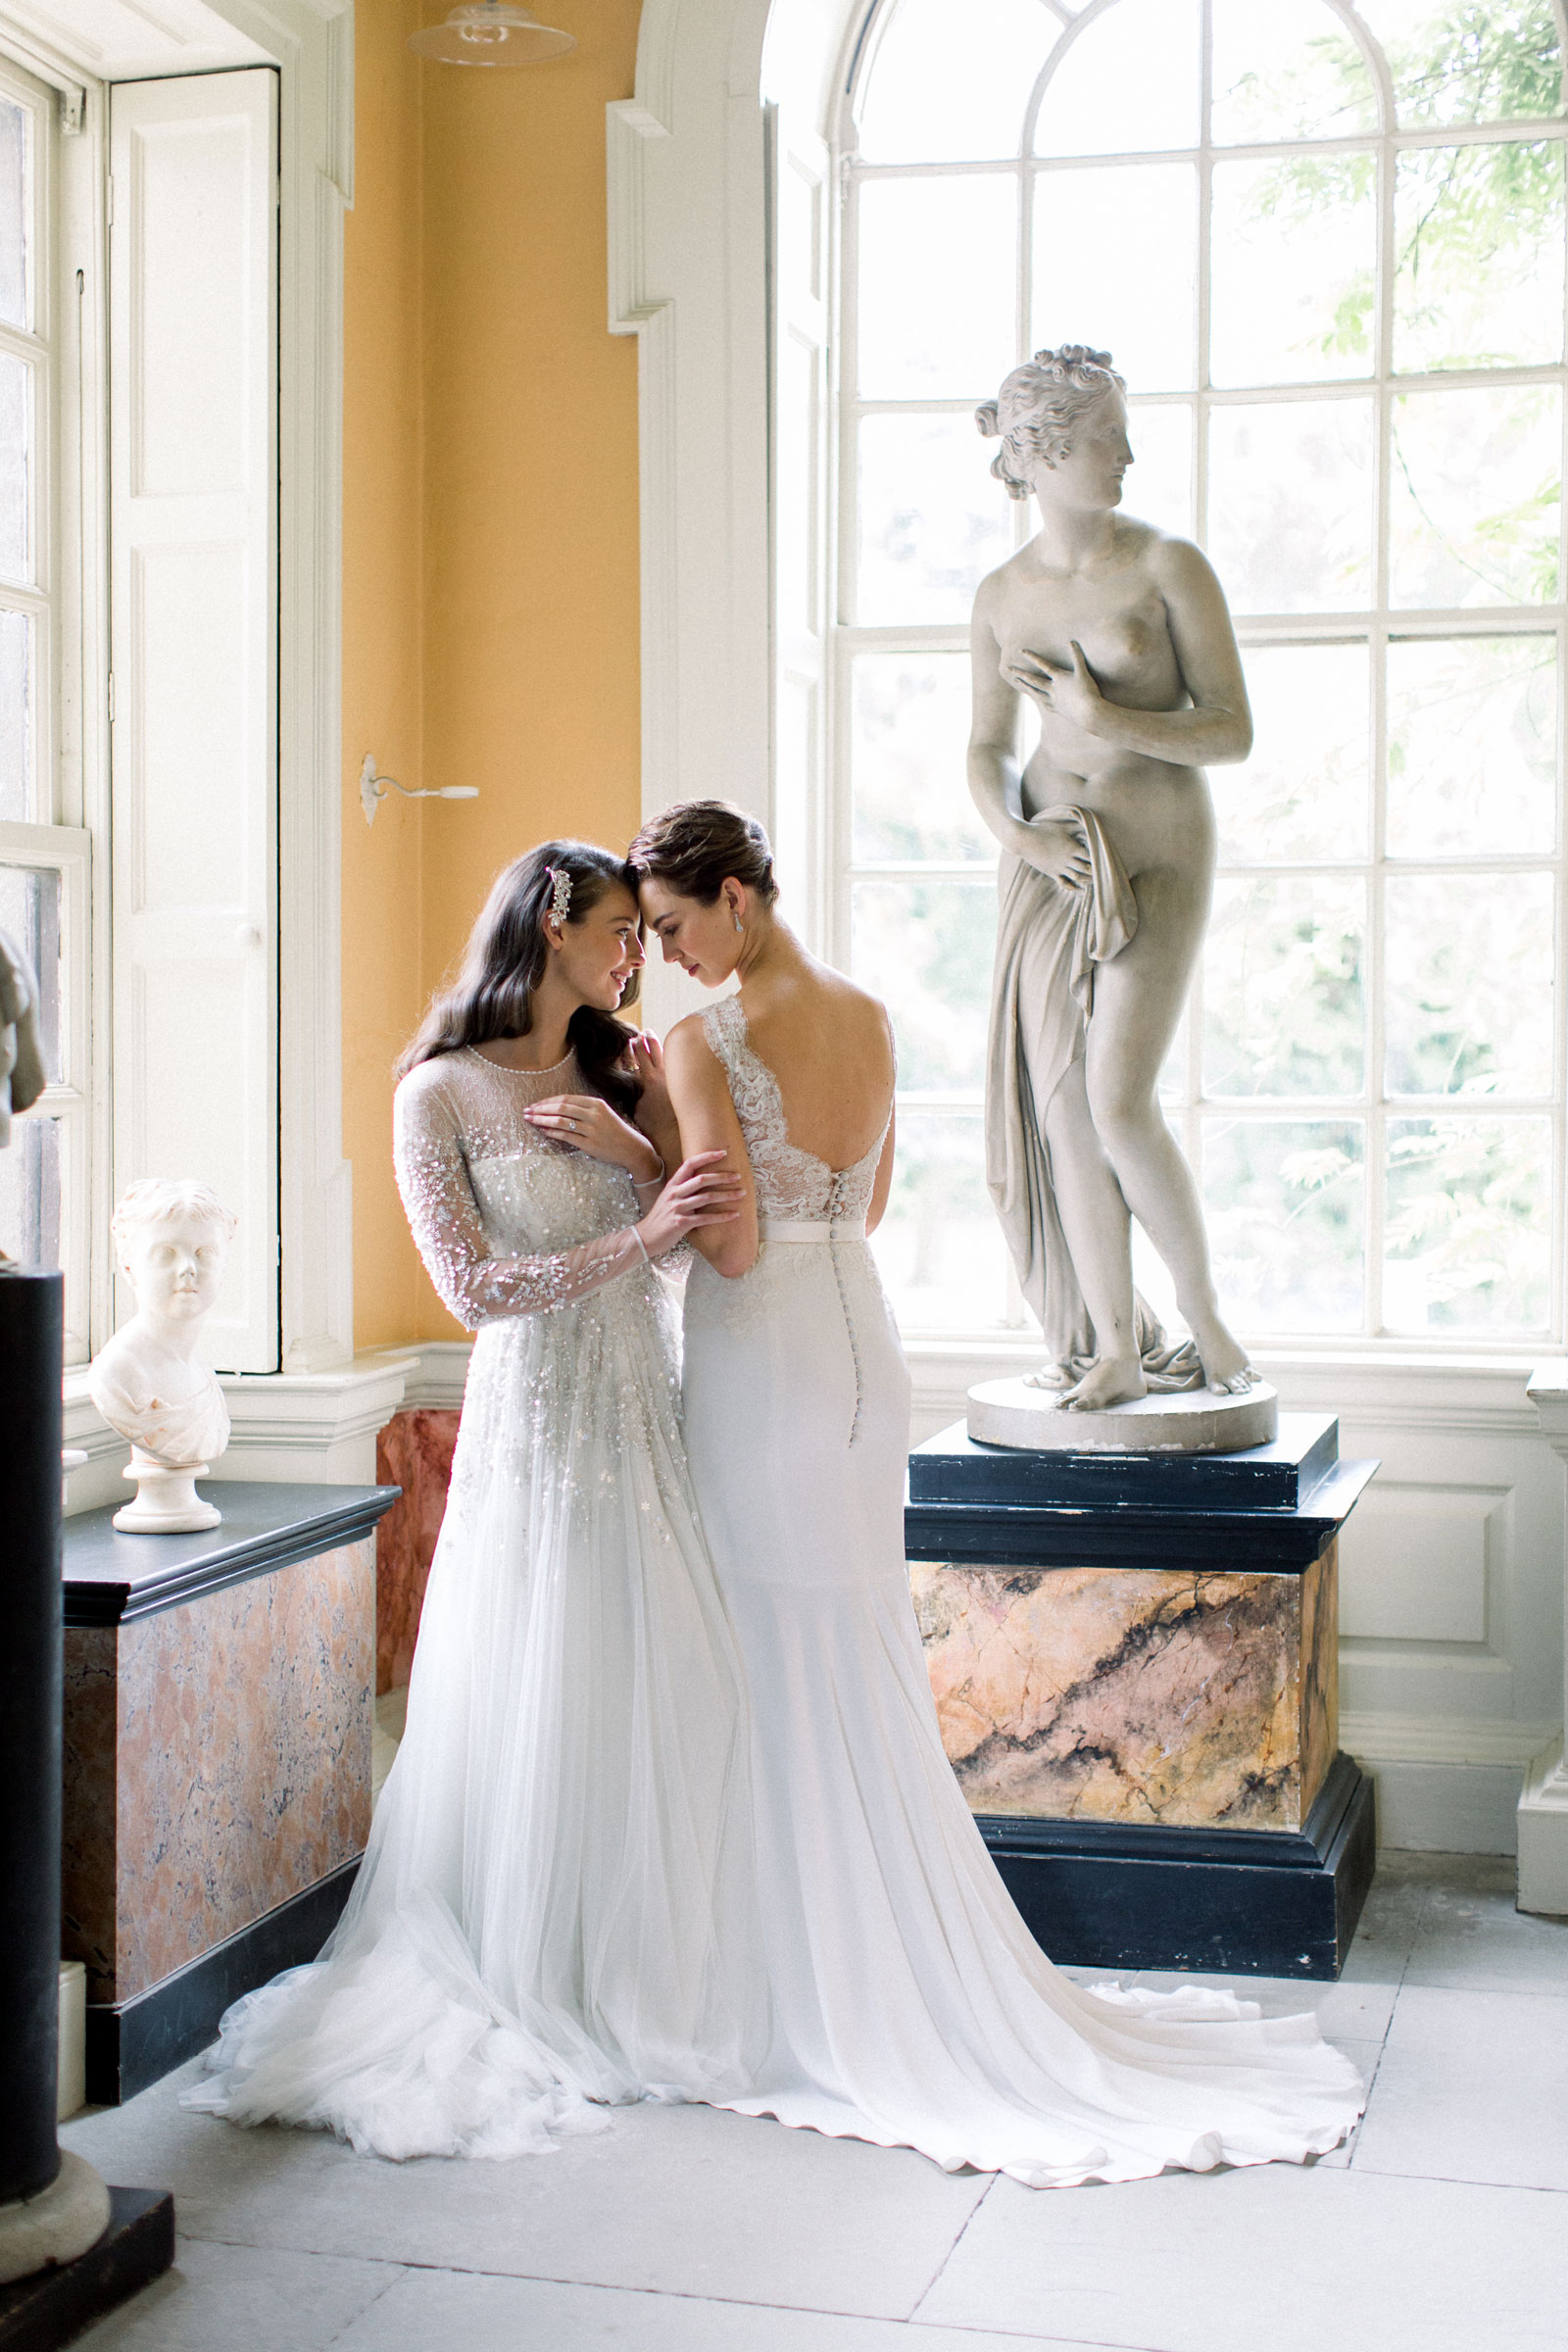 Two brides embracing.